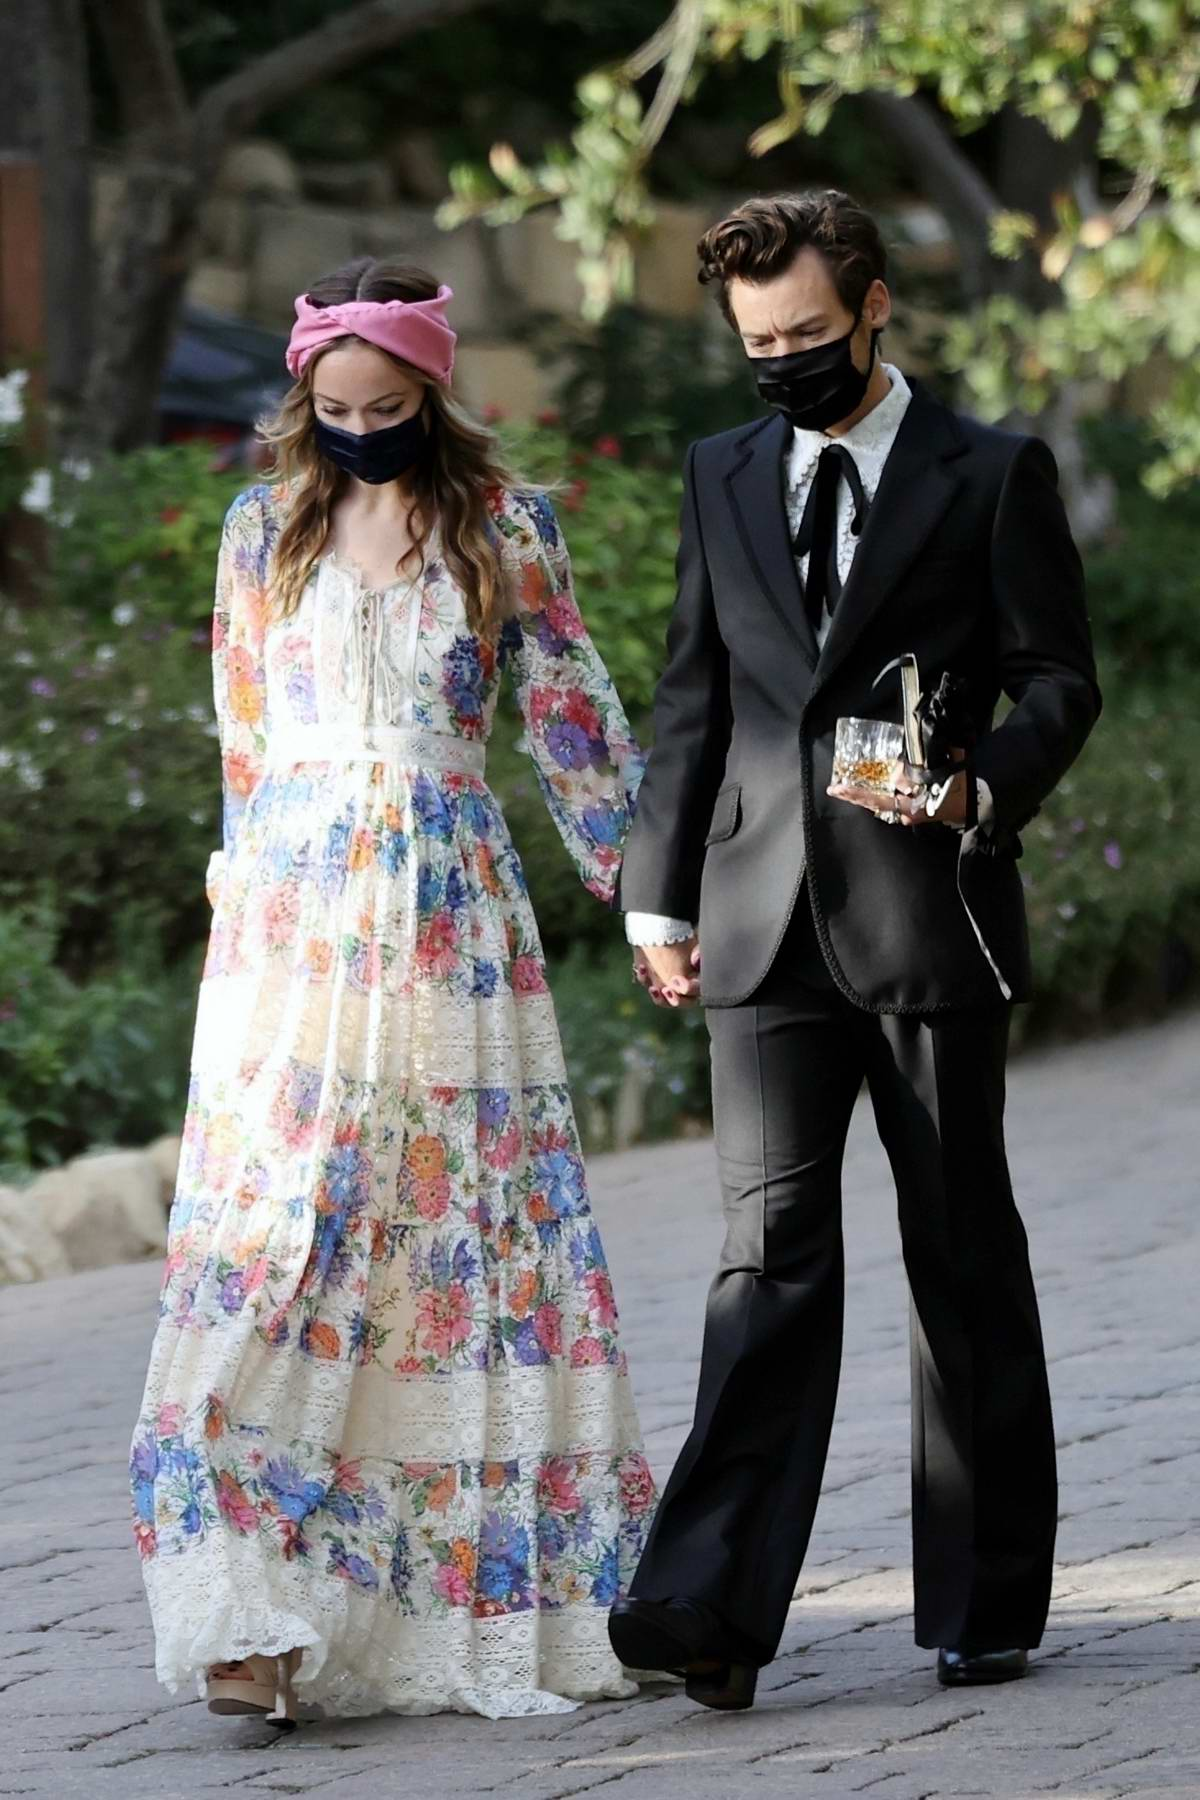 Olivia Wilde and Harry Styles hold hands while attending Harry's agent's wedding in Montecito, California